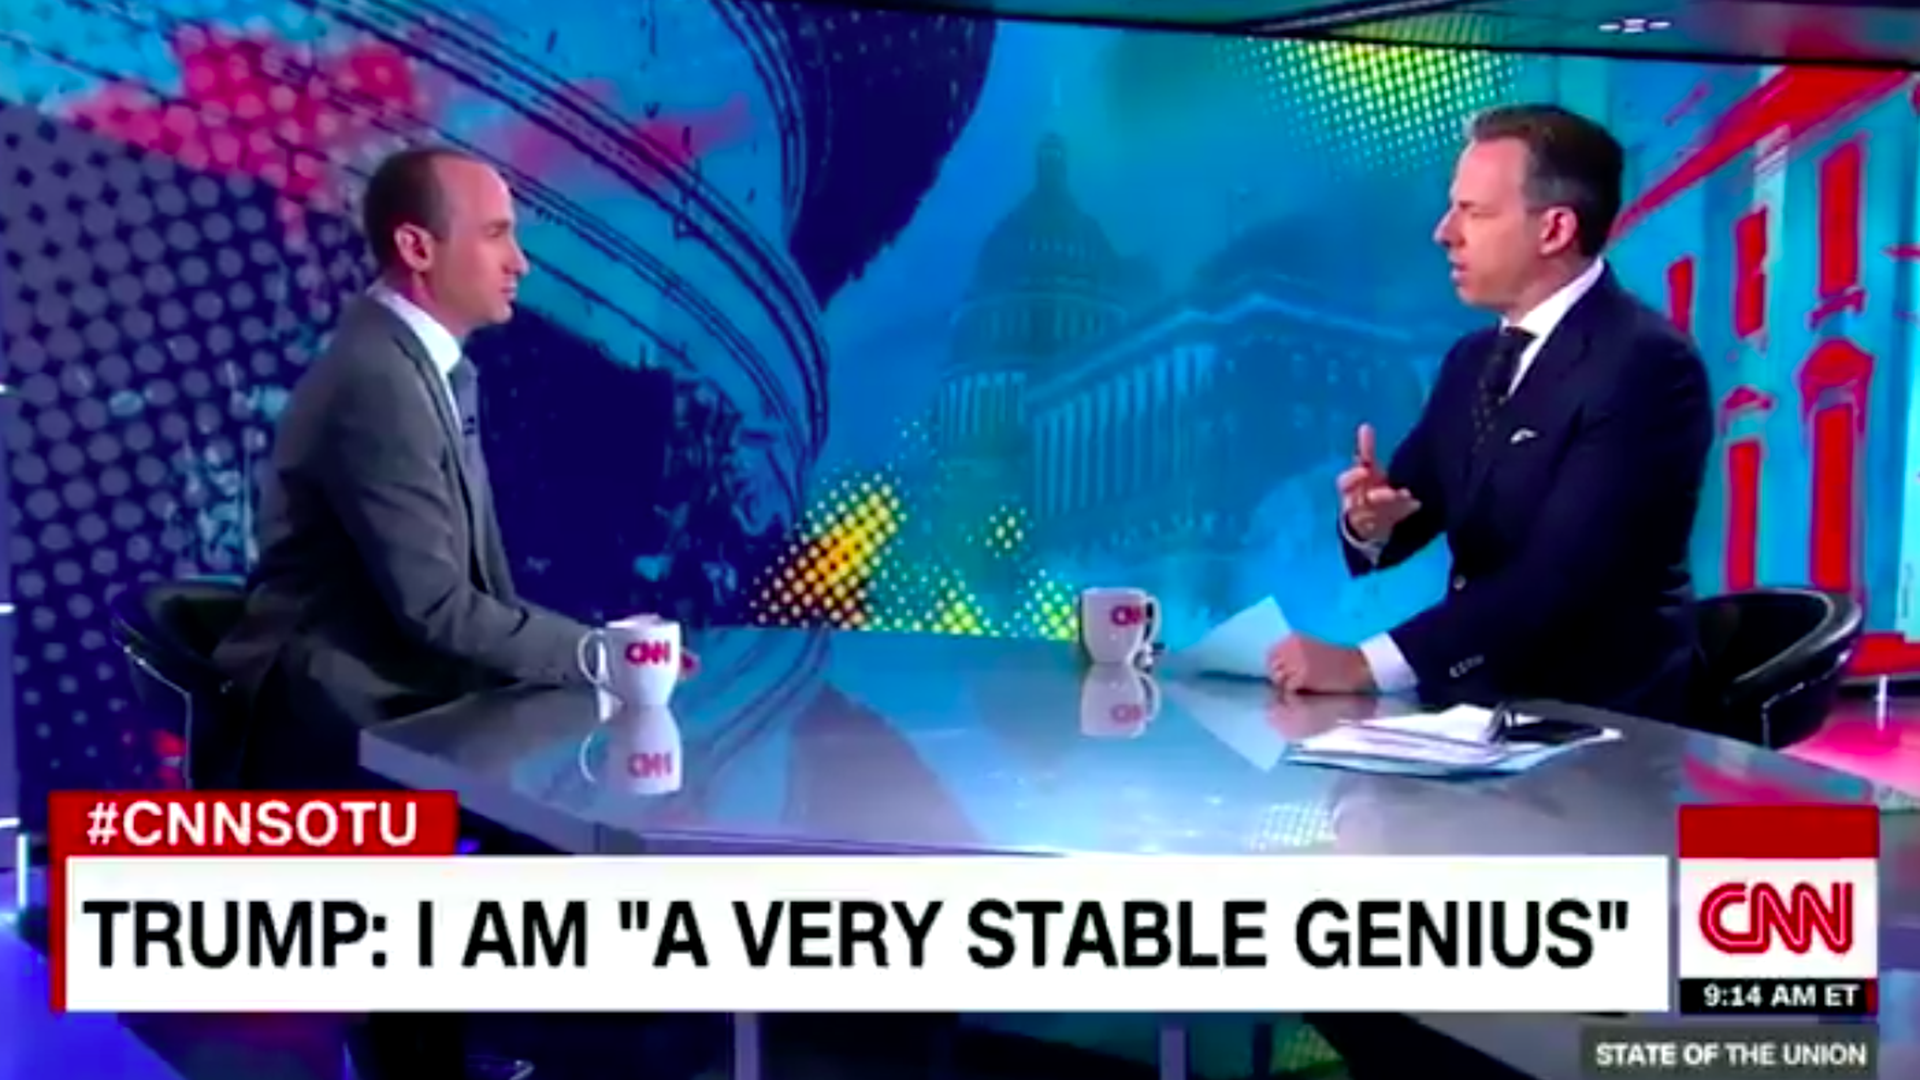 Stephen Miller and Jake Tapper argue Sunday morning on CNN